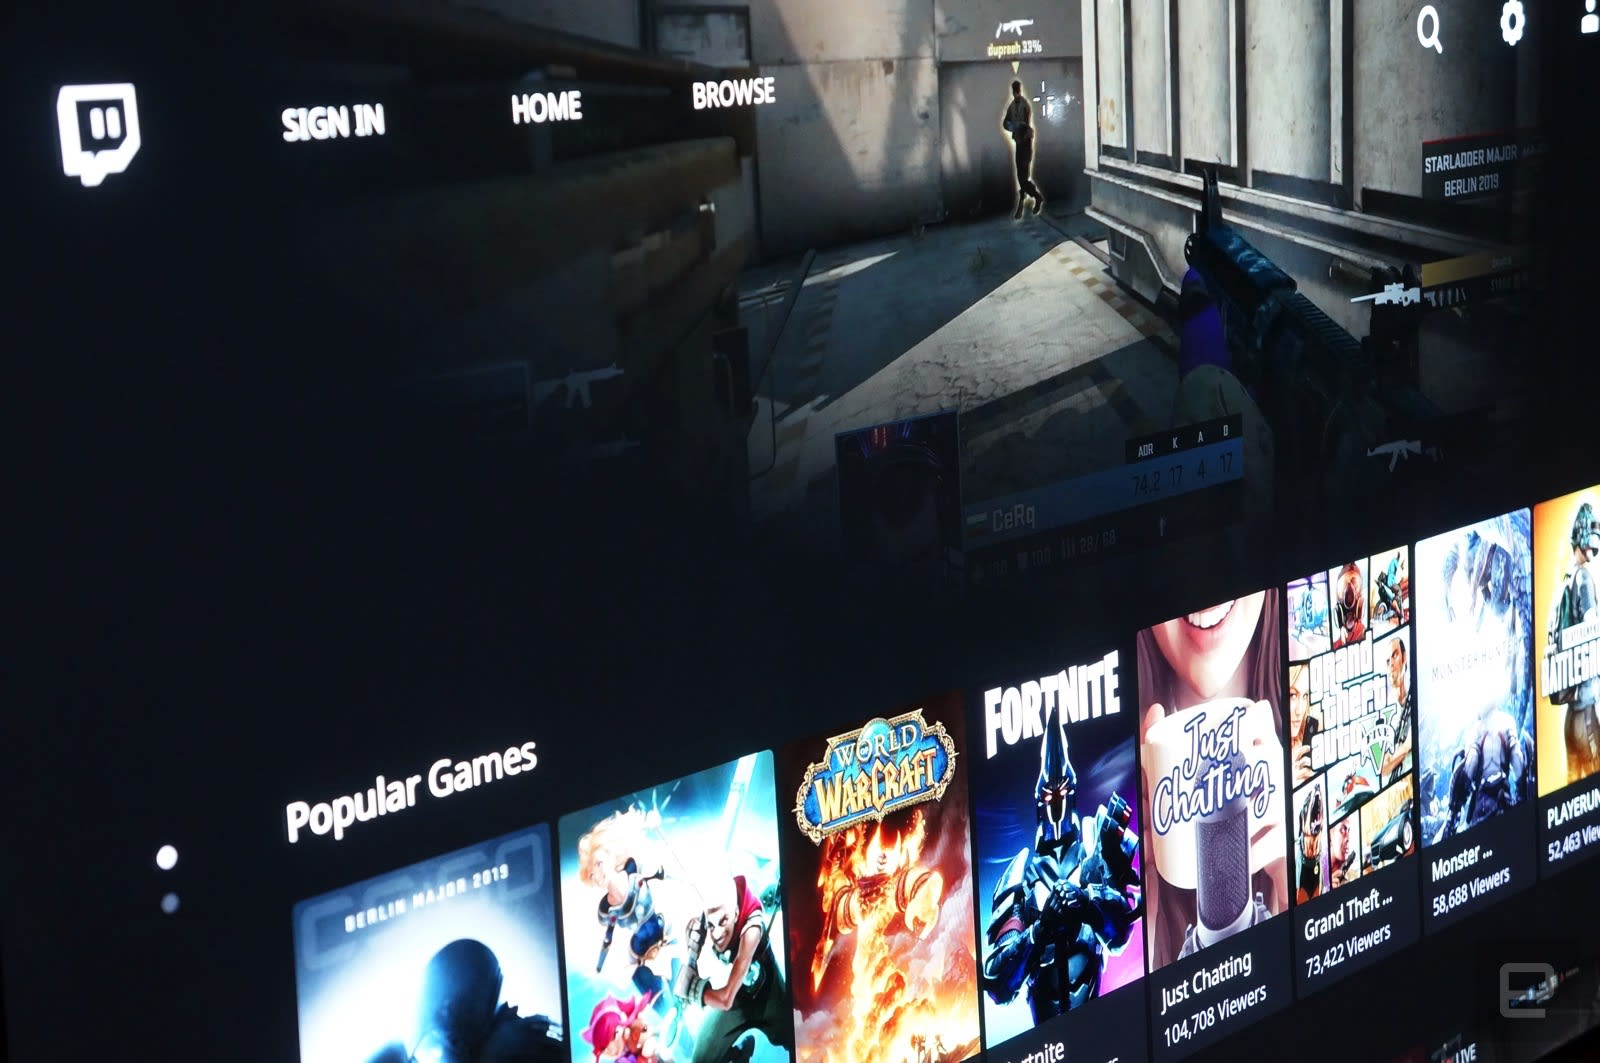 Twitch finally releases Apple TV app as public beta